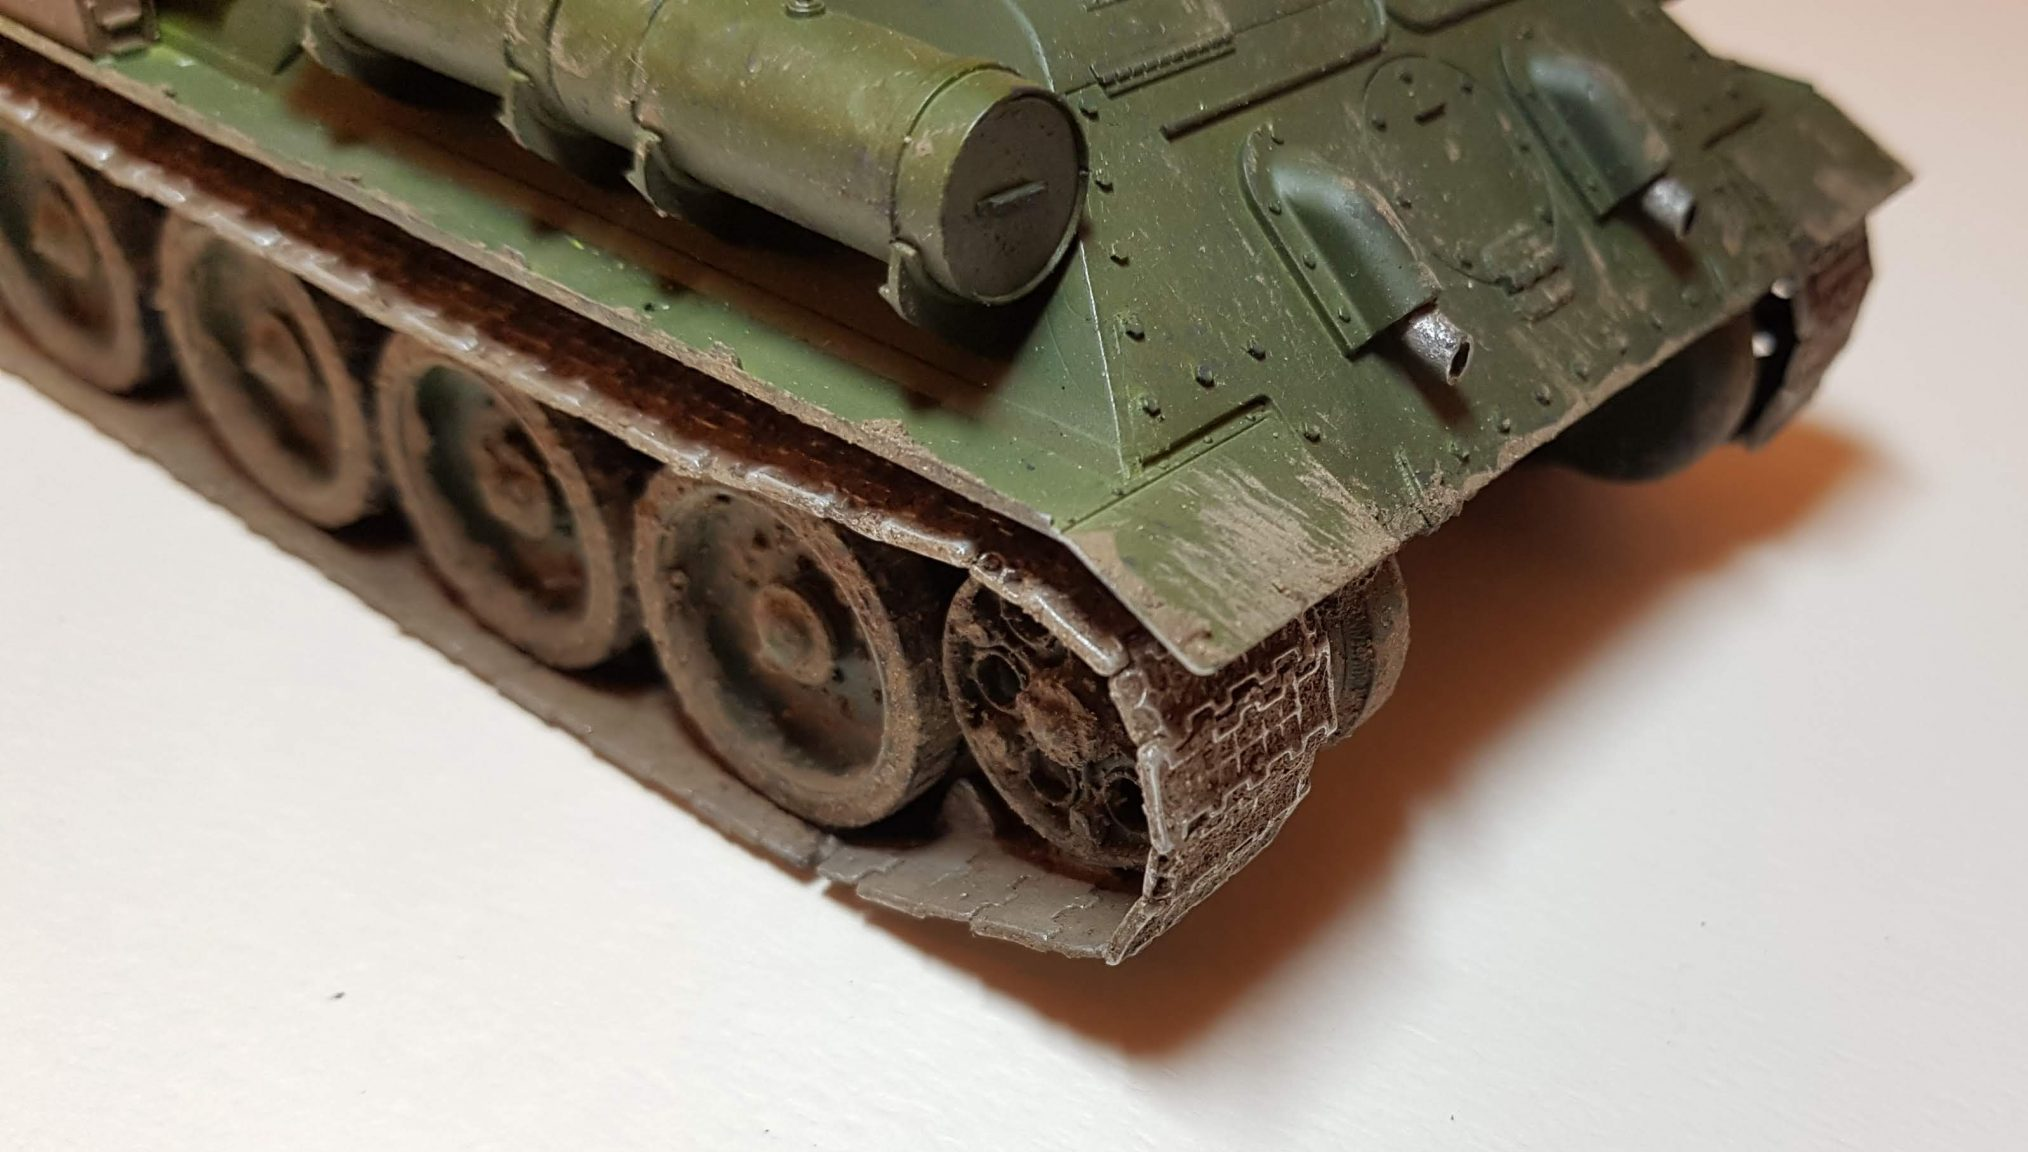 SU-85M - View 4 - 1/35 Scale - Built By Wright Built - Dragon Models